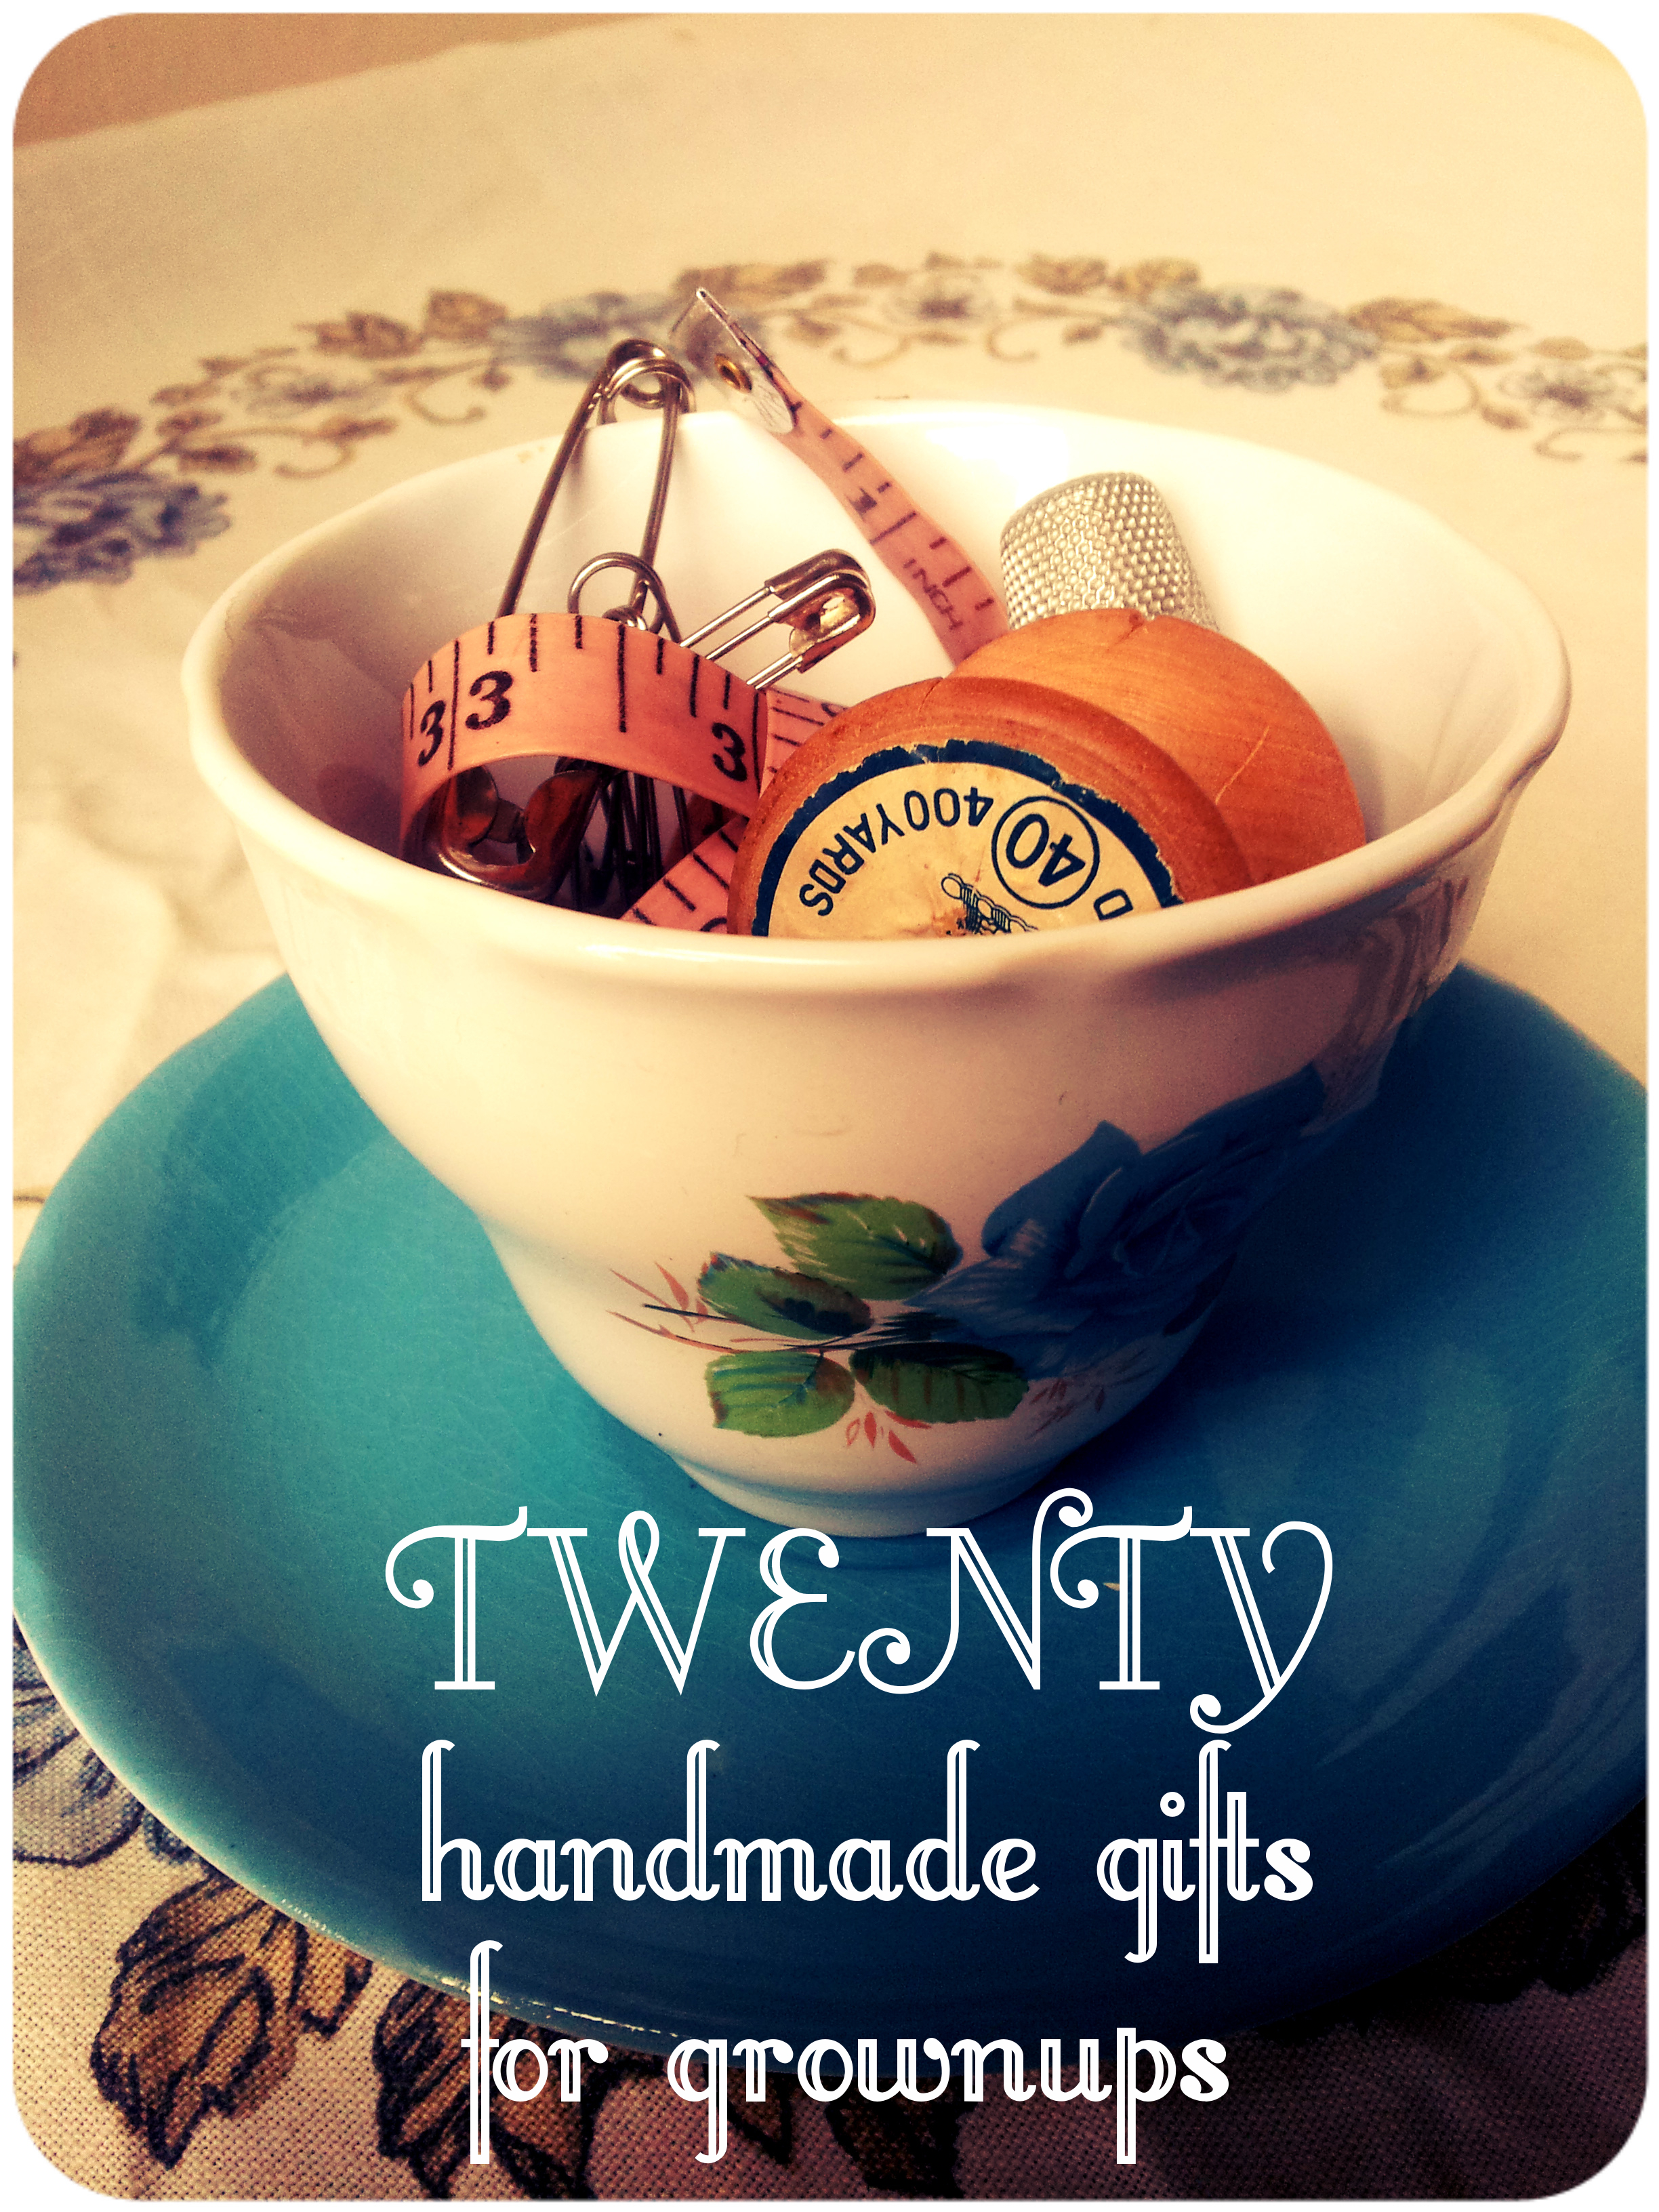 25 handmade gifts for grown ups - Lulastic and the Hippyshake